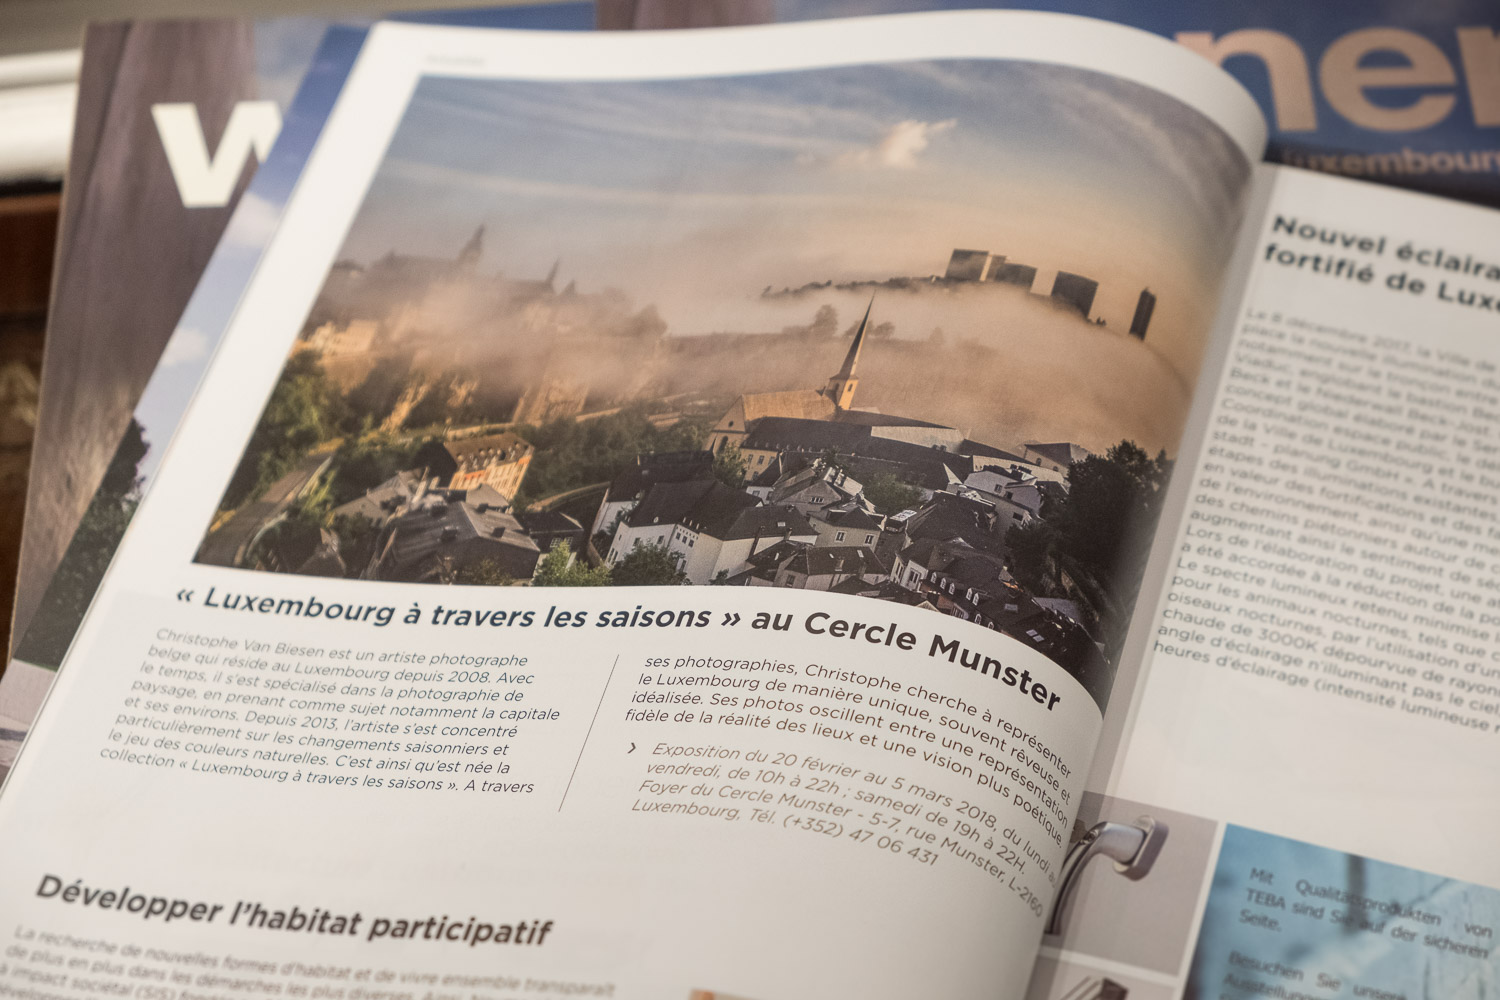 Seasons of Luxembourg by Christophe Van Biesen - Article in Wunnen Magazine - Exhibition at the Cercle Munster - Photography by Christophe Van Biesen - Luxembourg Landscape and Travel Photographer